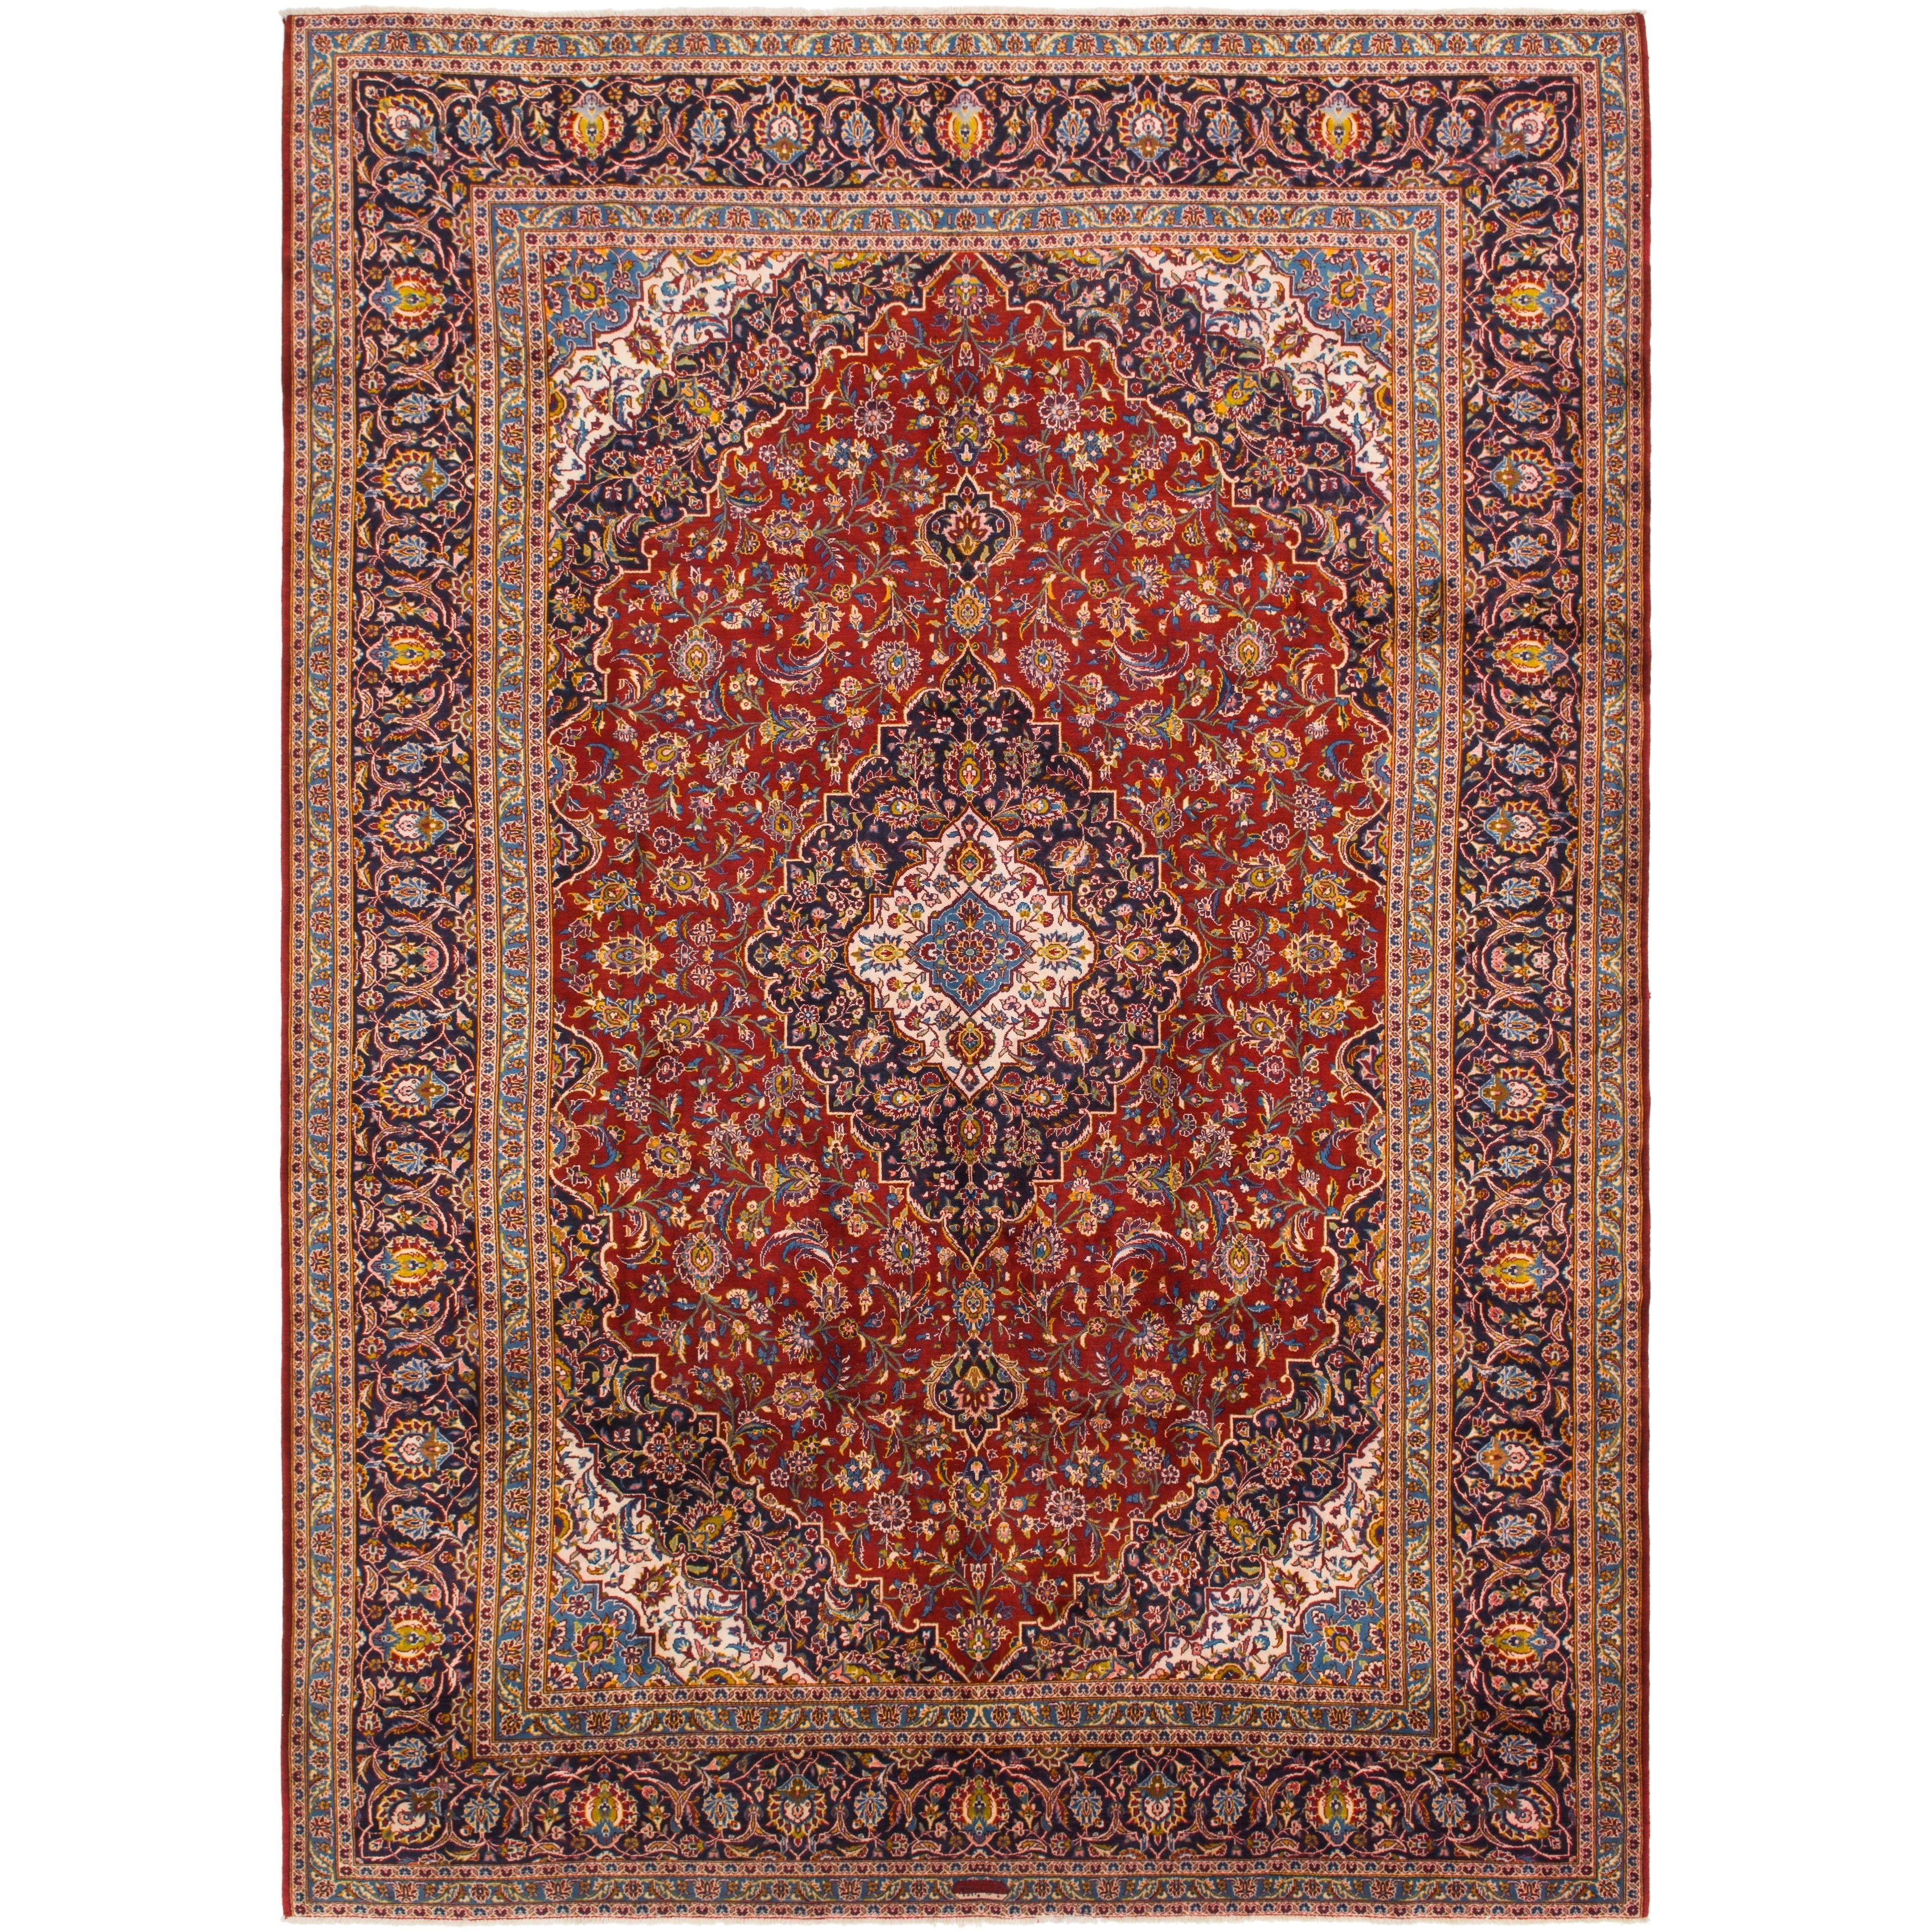 Hand Knotted Kashan Wool Area Rug - 10 3 x 14 5 (Red - 10 3 x 14 5)